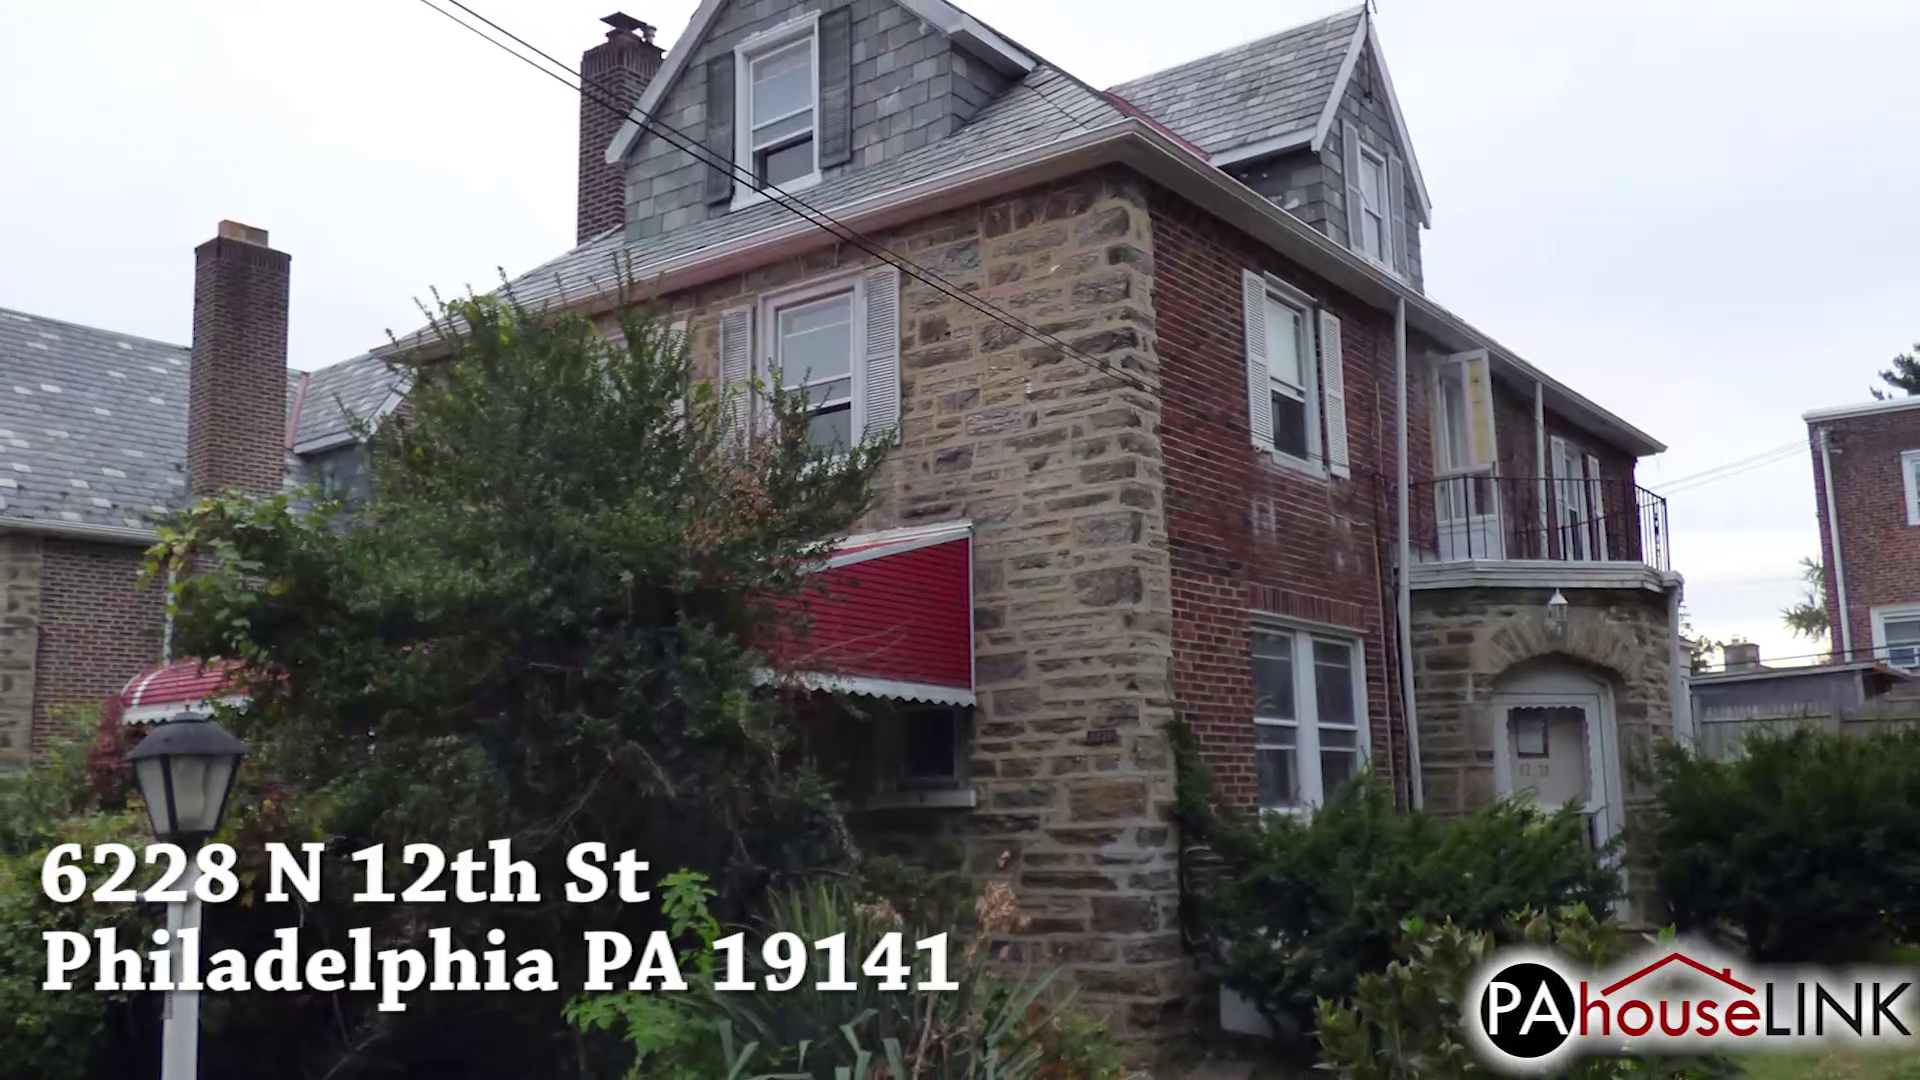 6228 N 12th St Philadelphia PA 19141 – Foreclosure Properties Philadelphia PA 19141